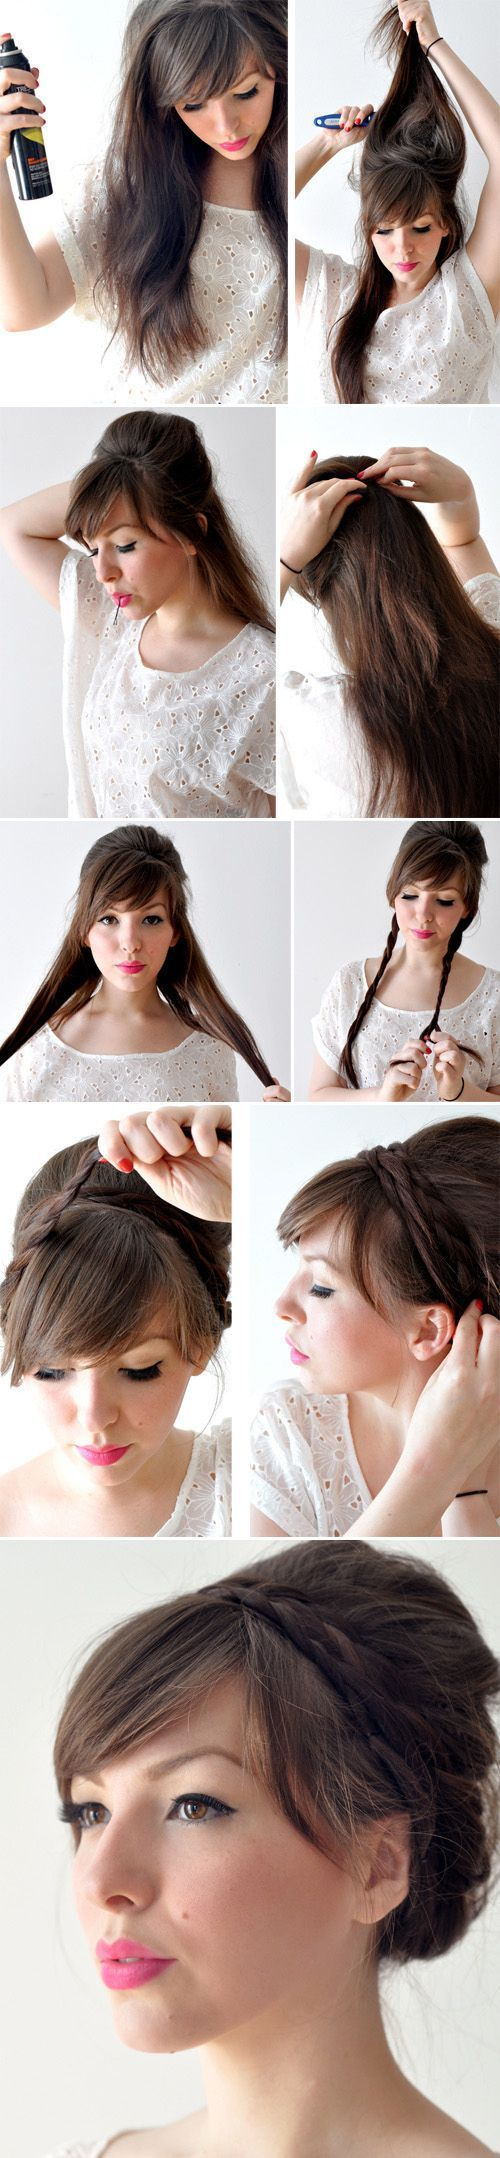 Simple updo!